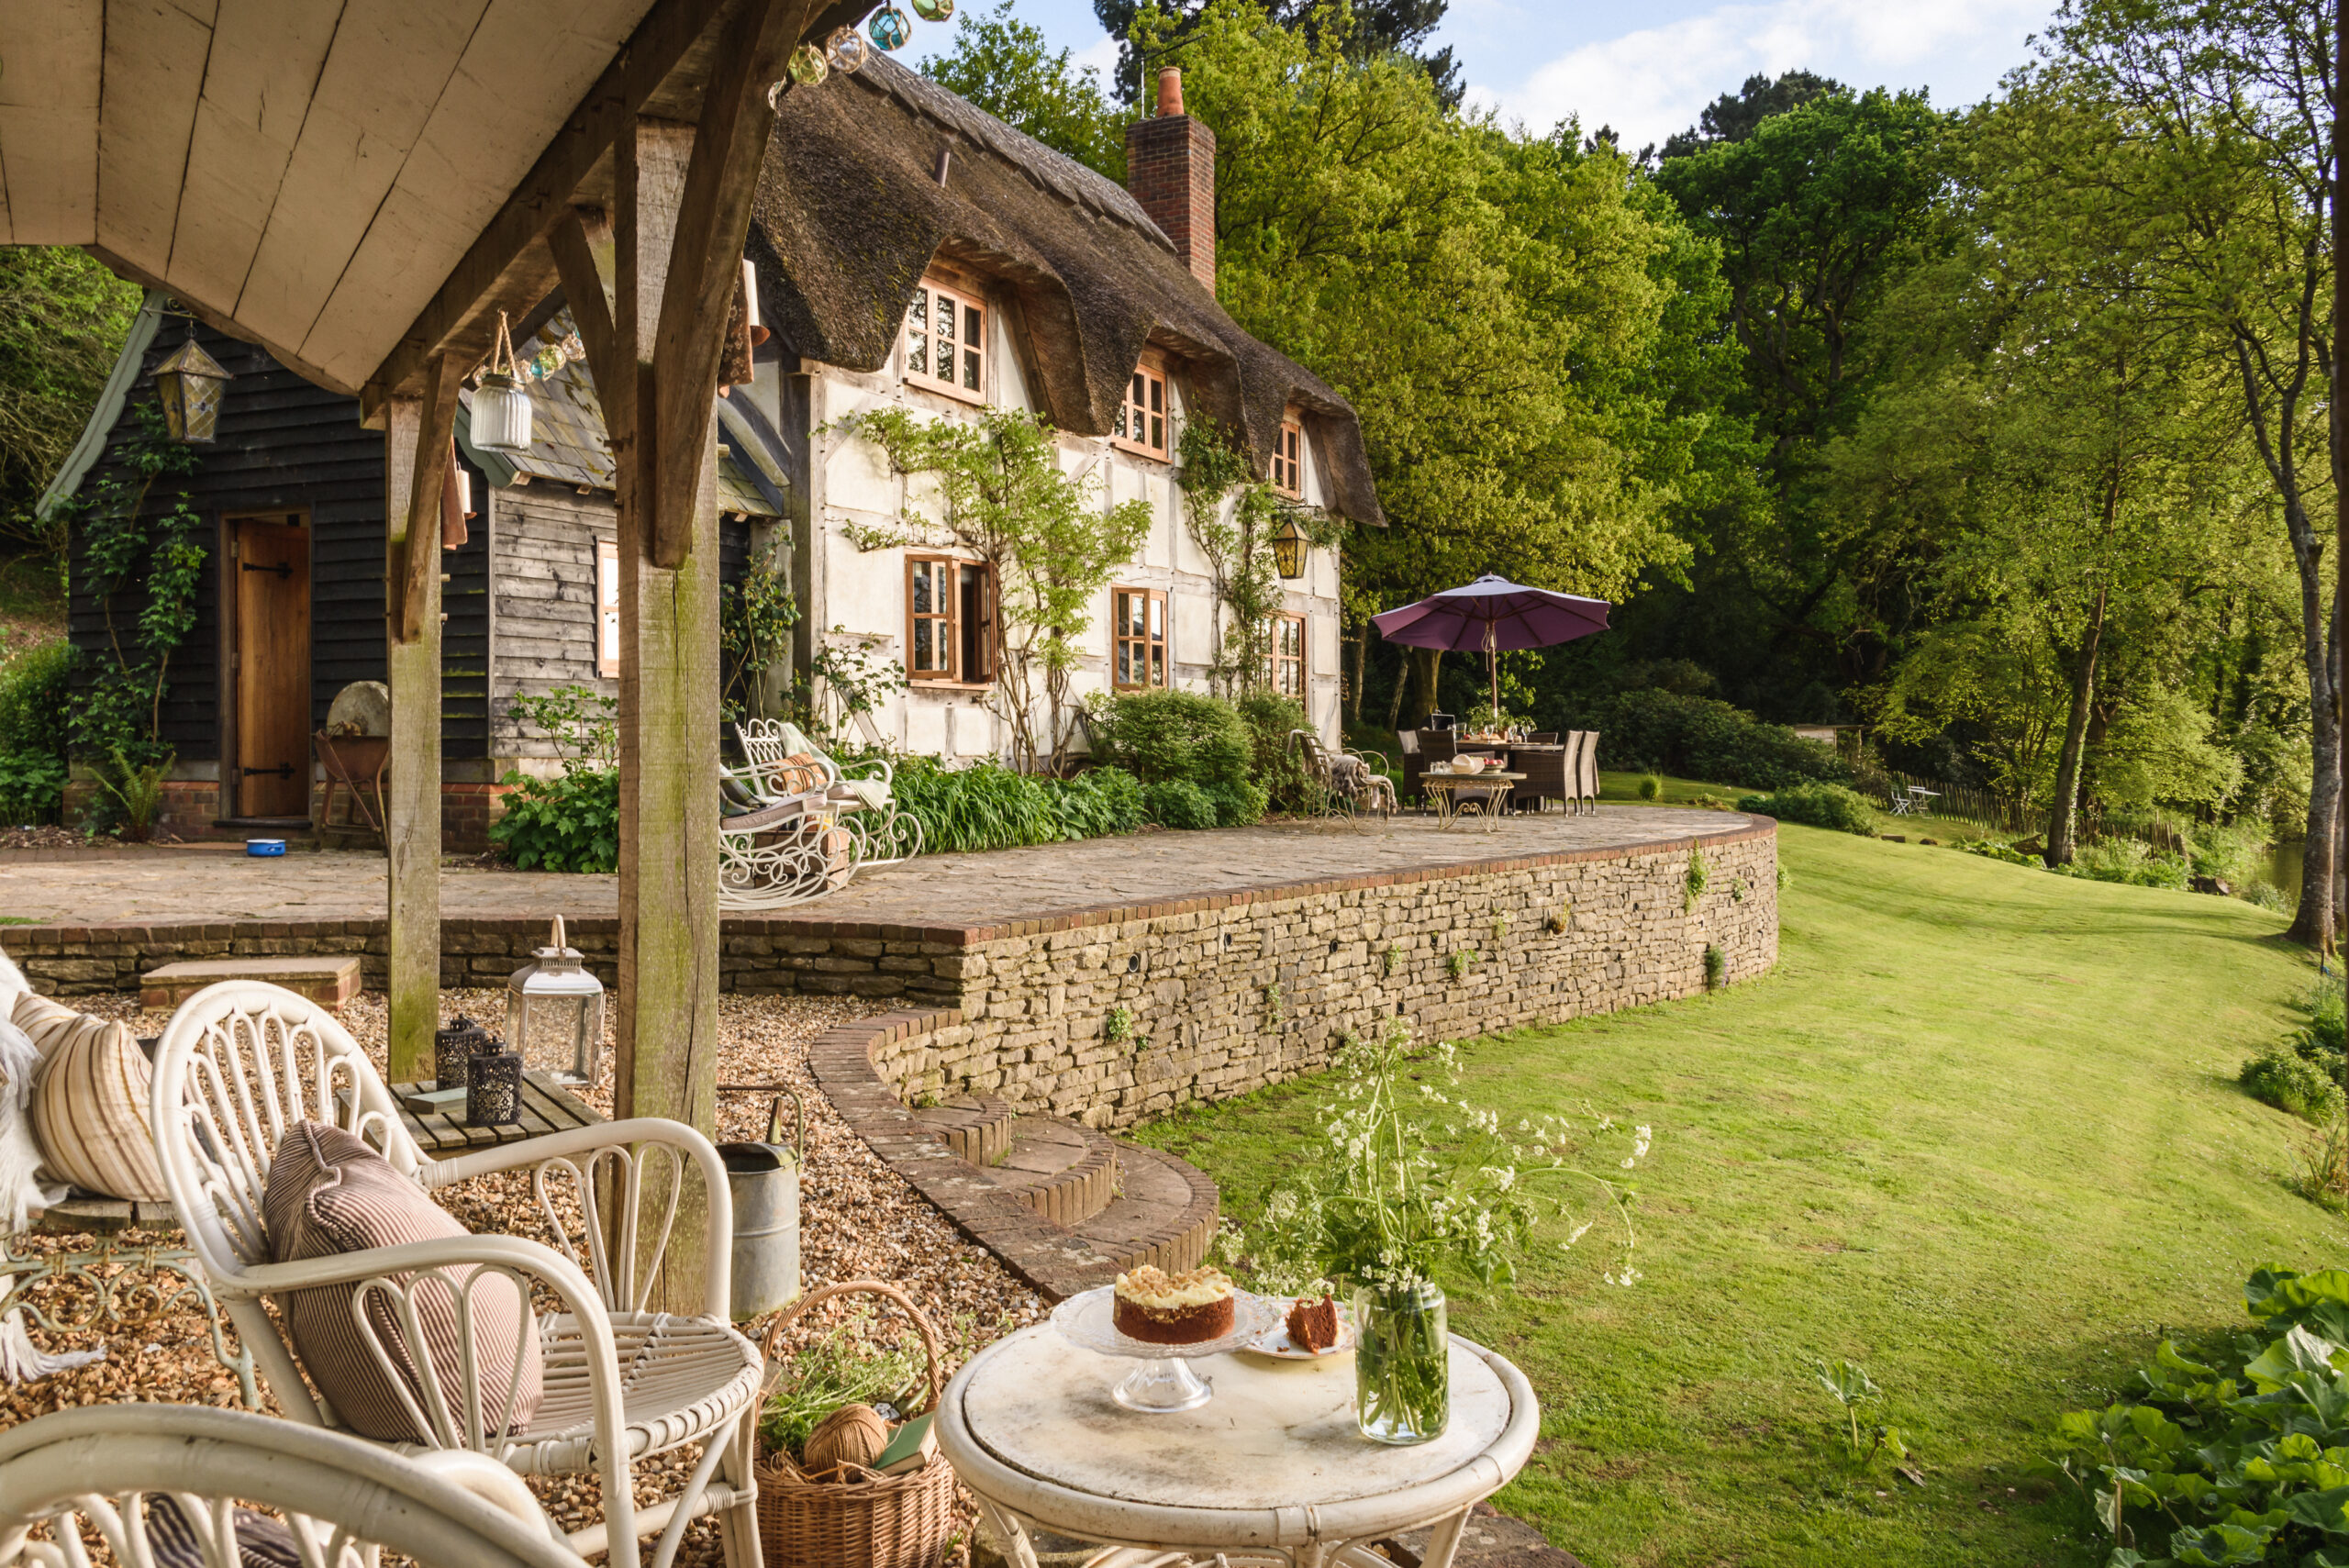 Undercastle Cottage is awarded VisitEngland's five star Gold Award 2019